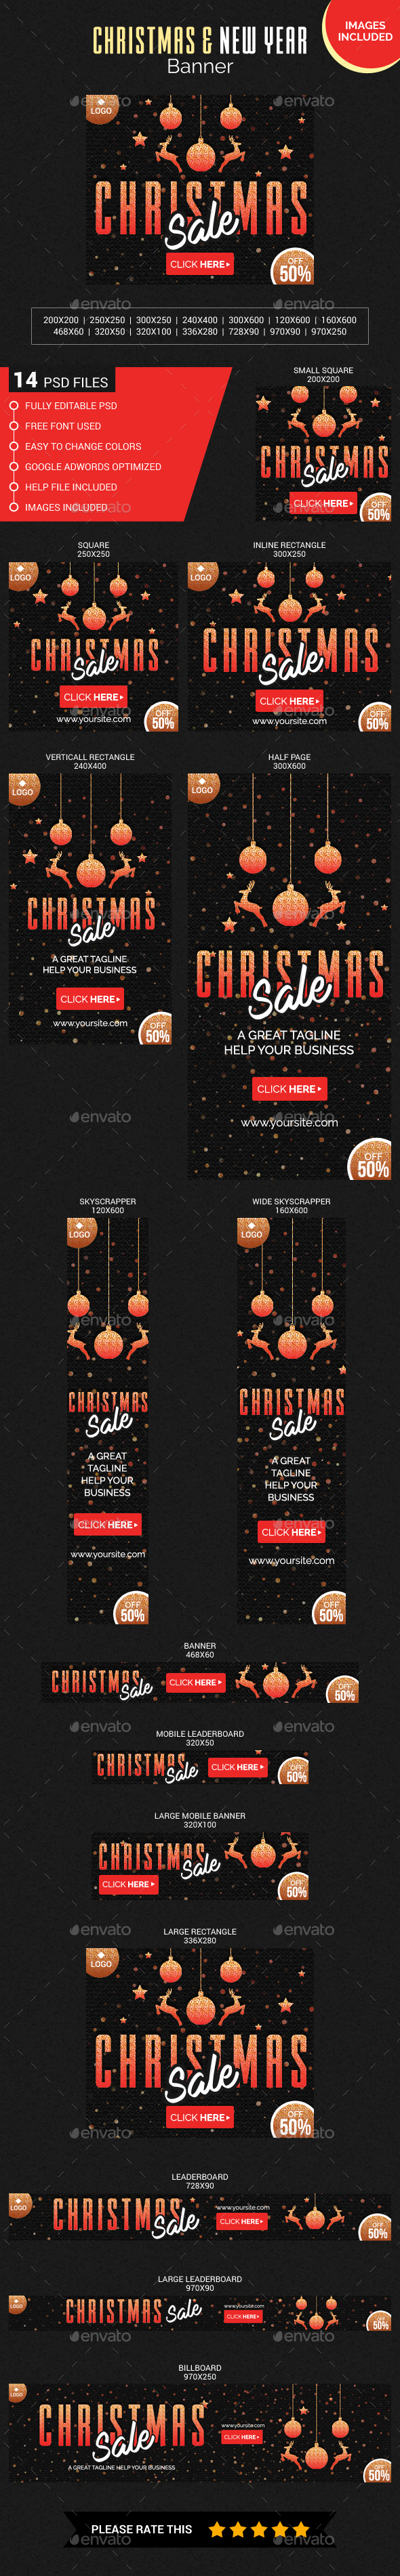 Christmas and New Year Banner (Images Included) - Banners & Ads Web Elements